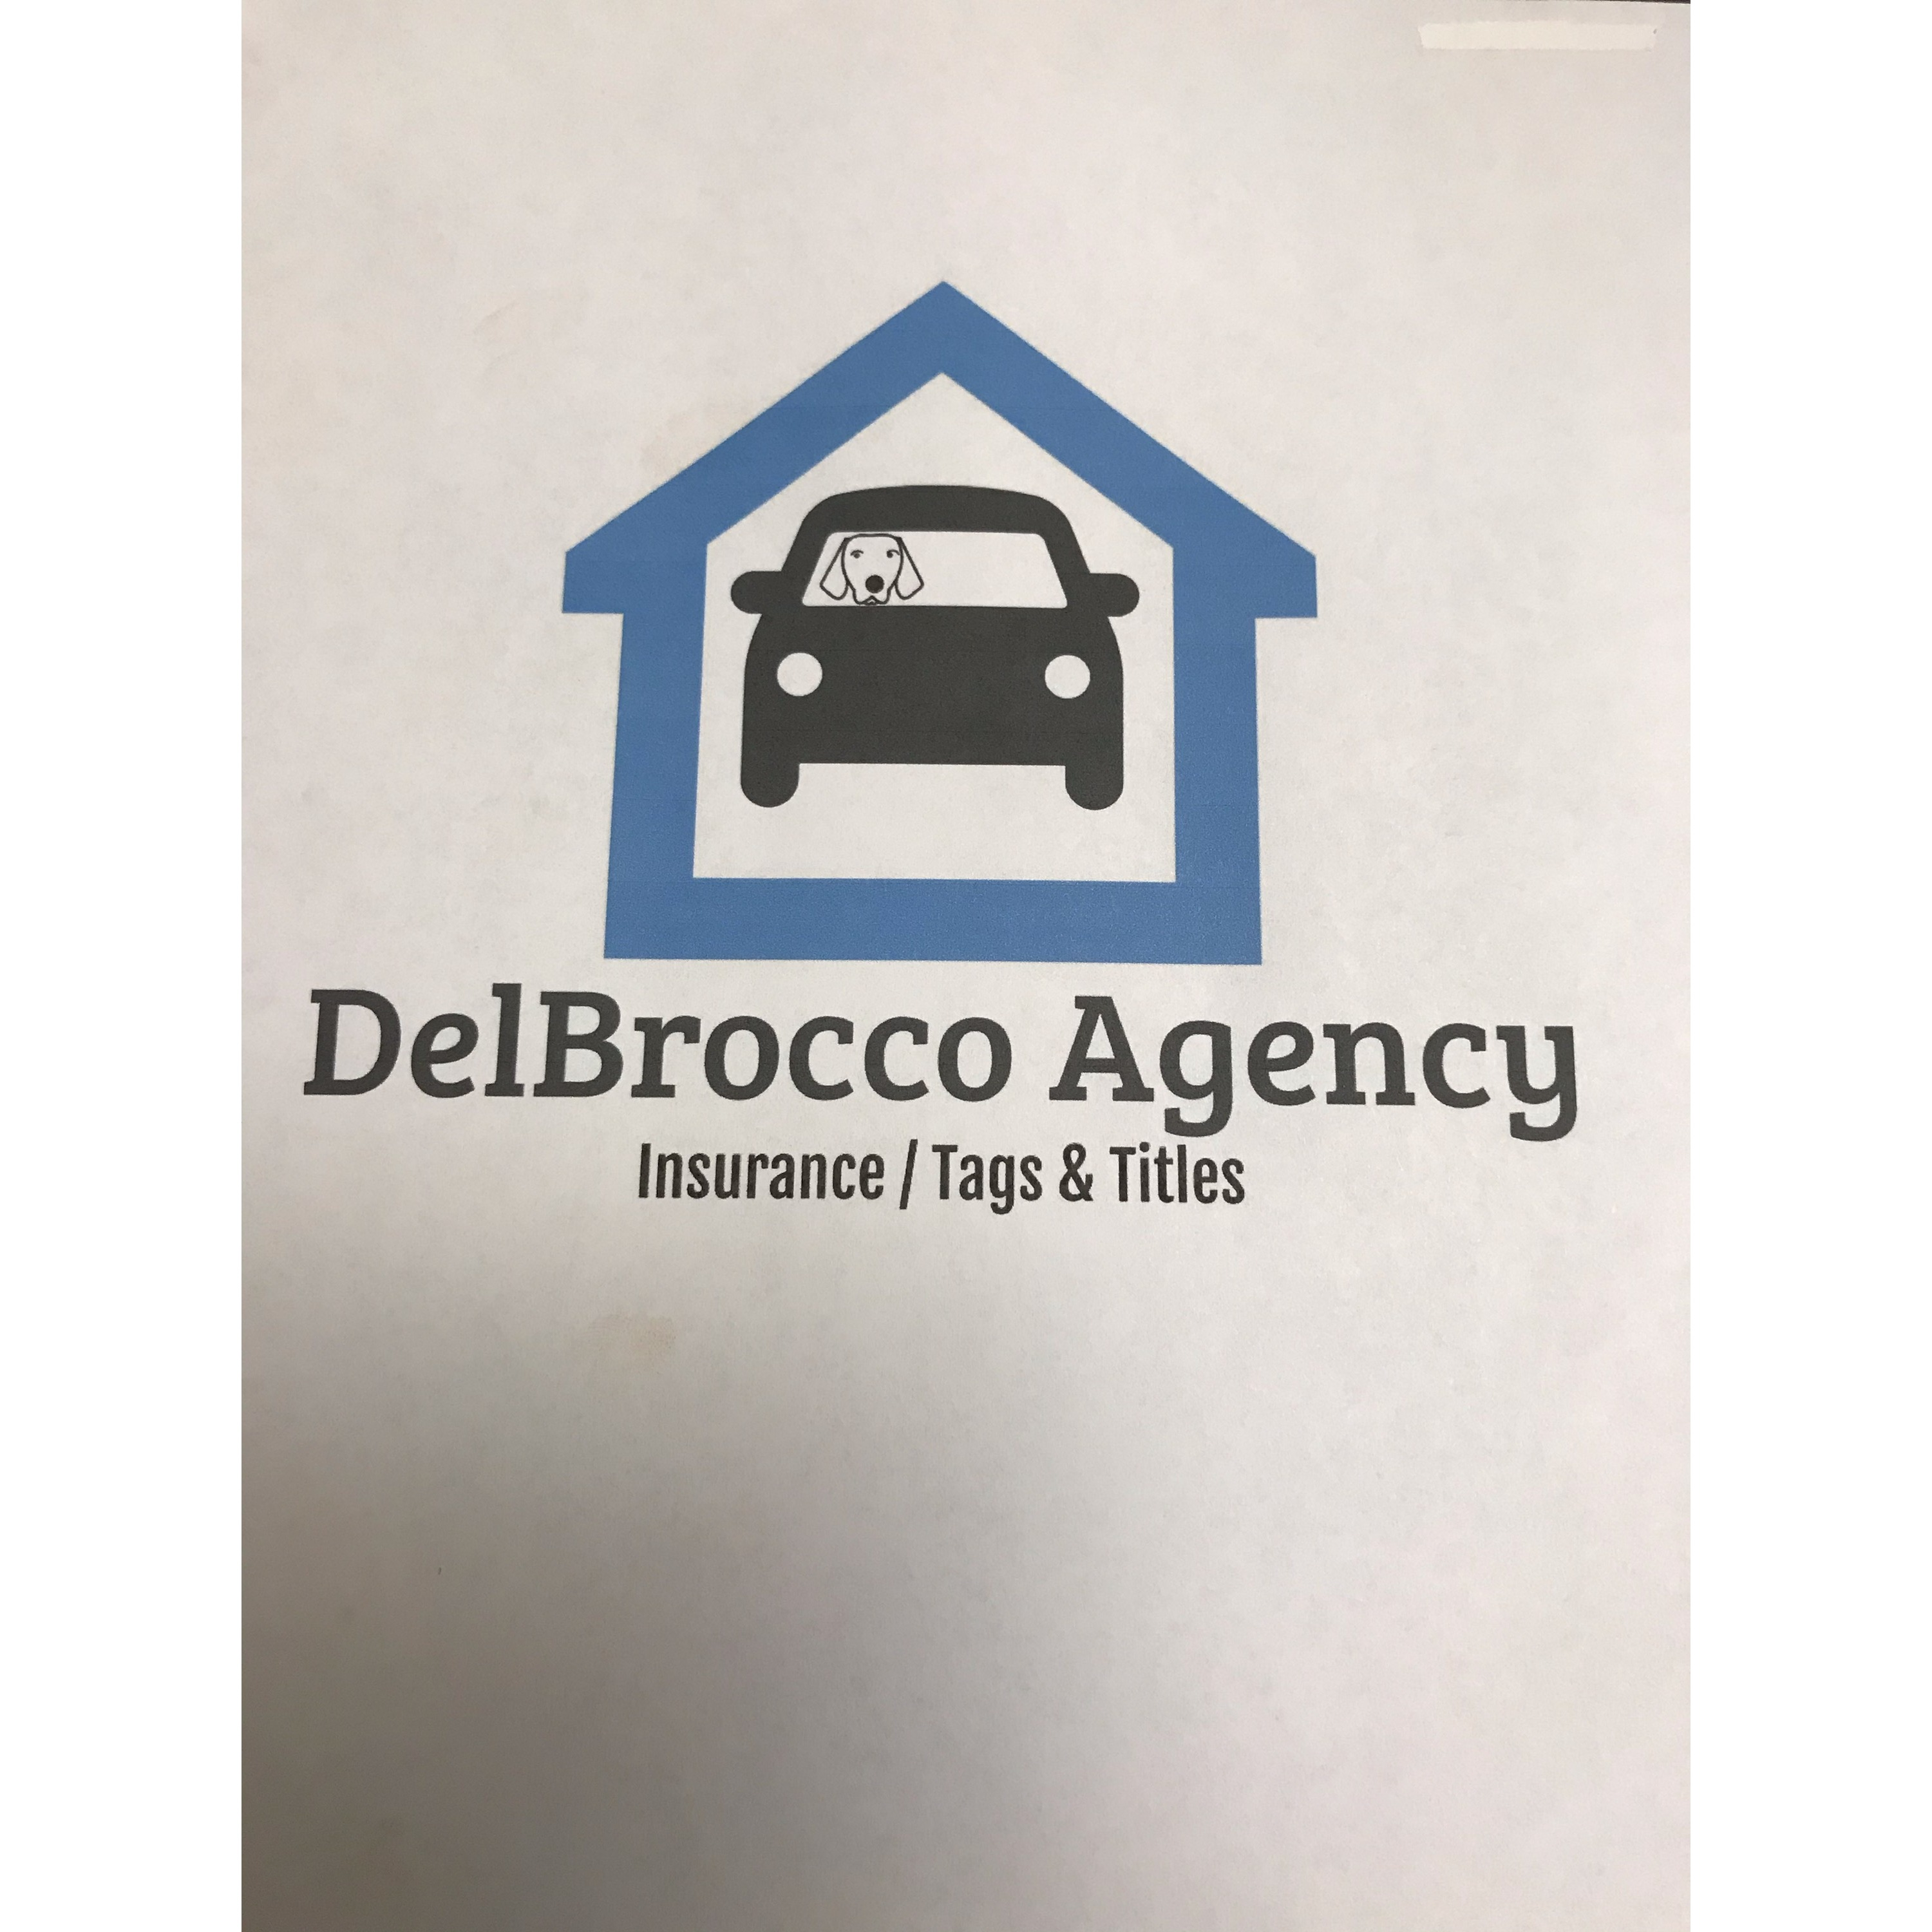 Nationwide Insurance: The Delbrocco Agency